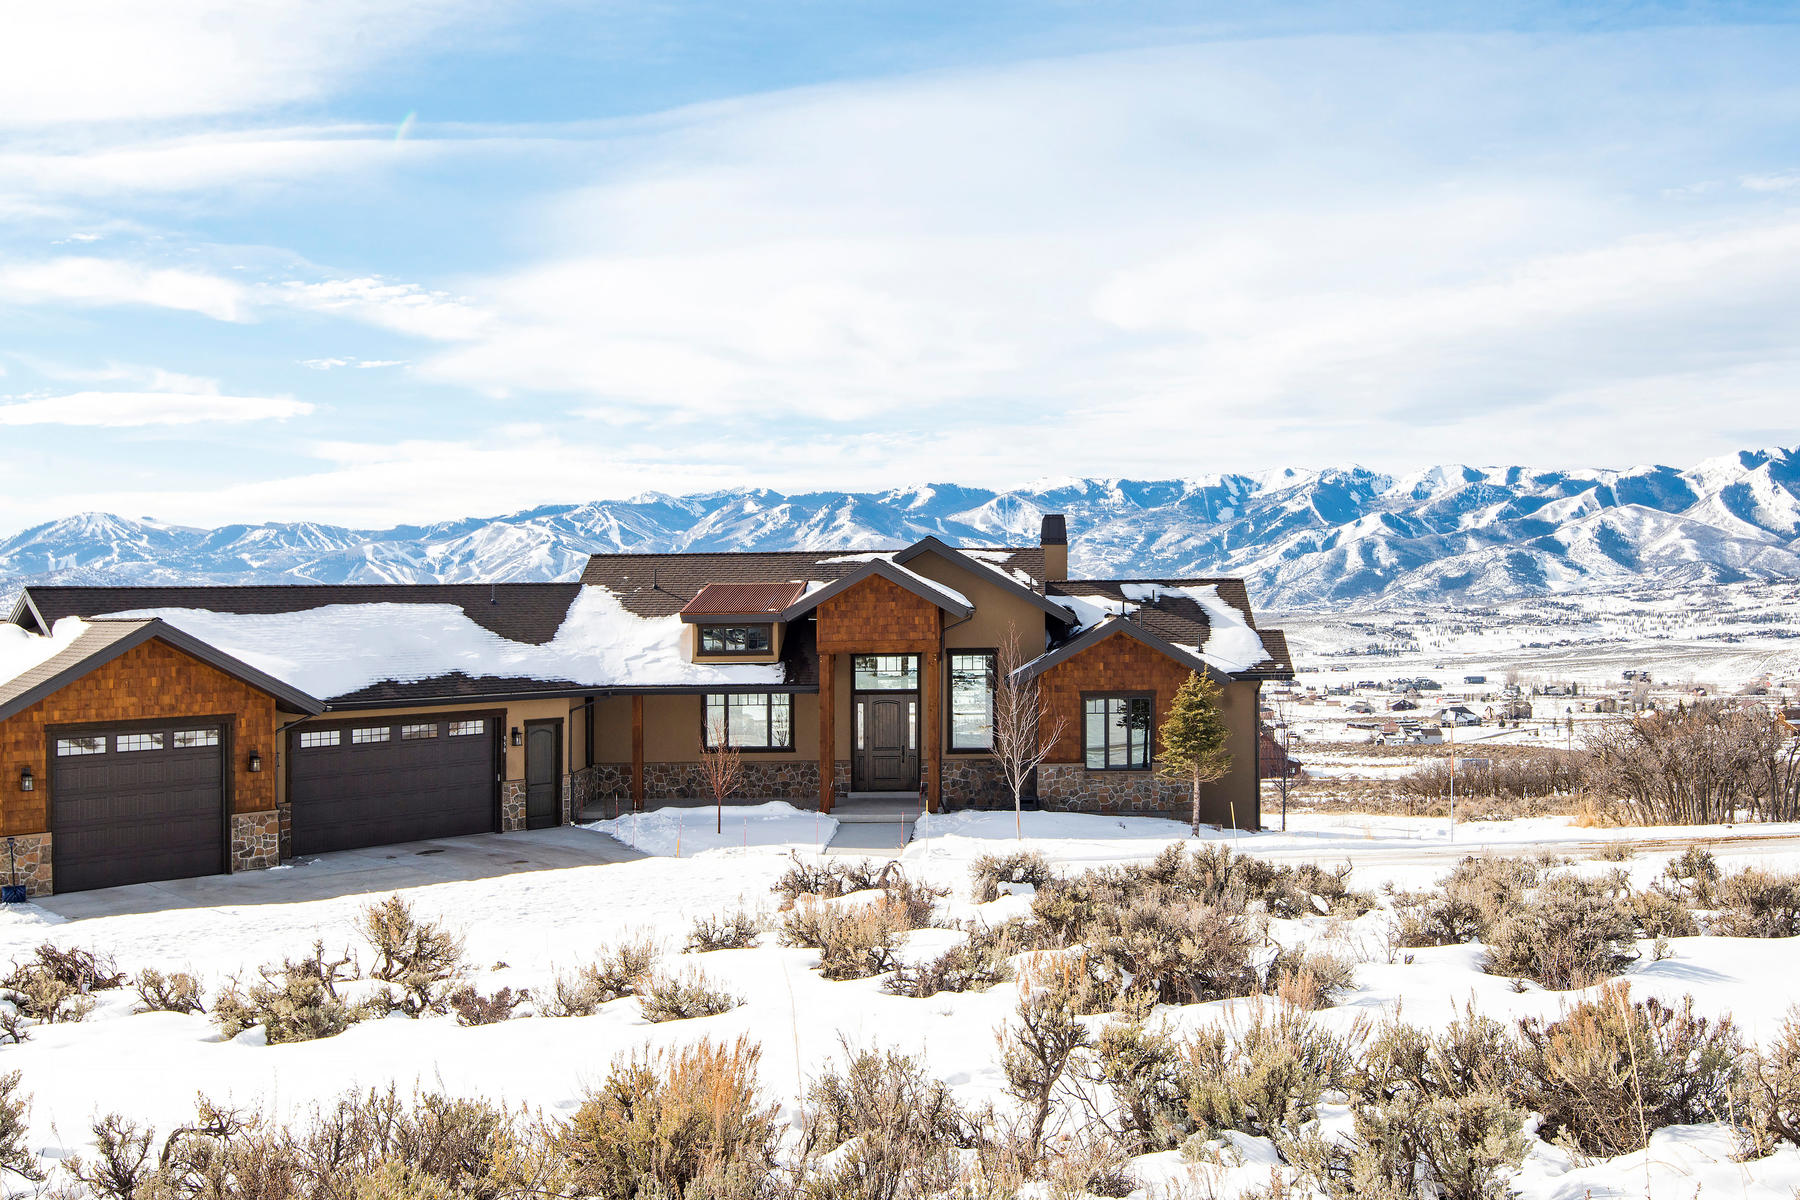 Земля для того Продажа на Oakridge Road North Beauty on 7.75 Acre Horse Property Park City School District 958 N Oakridge Rd Lot 24 Park City, Utah 84098 United States